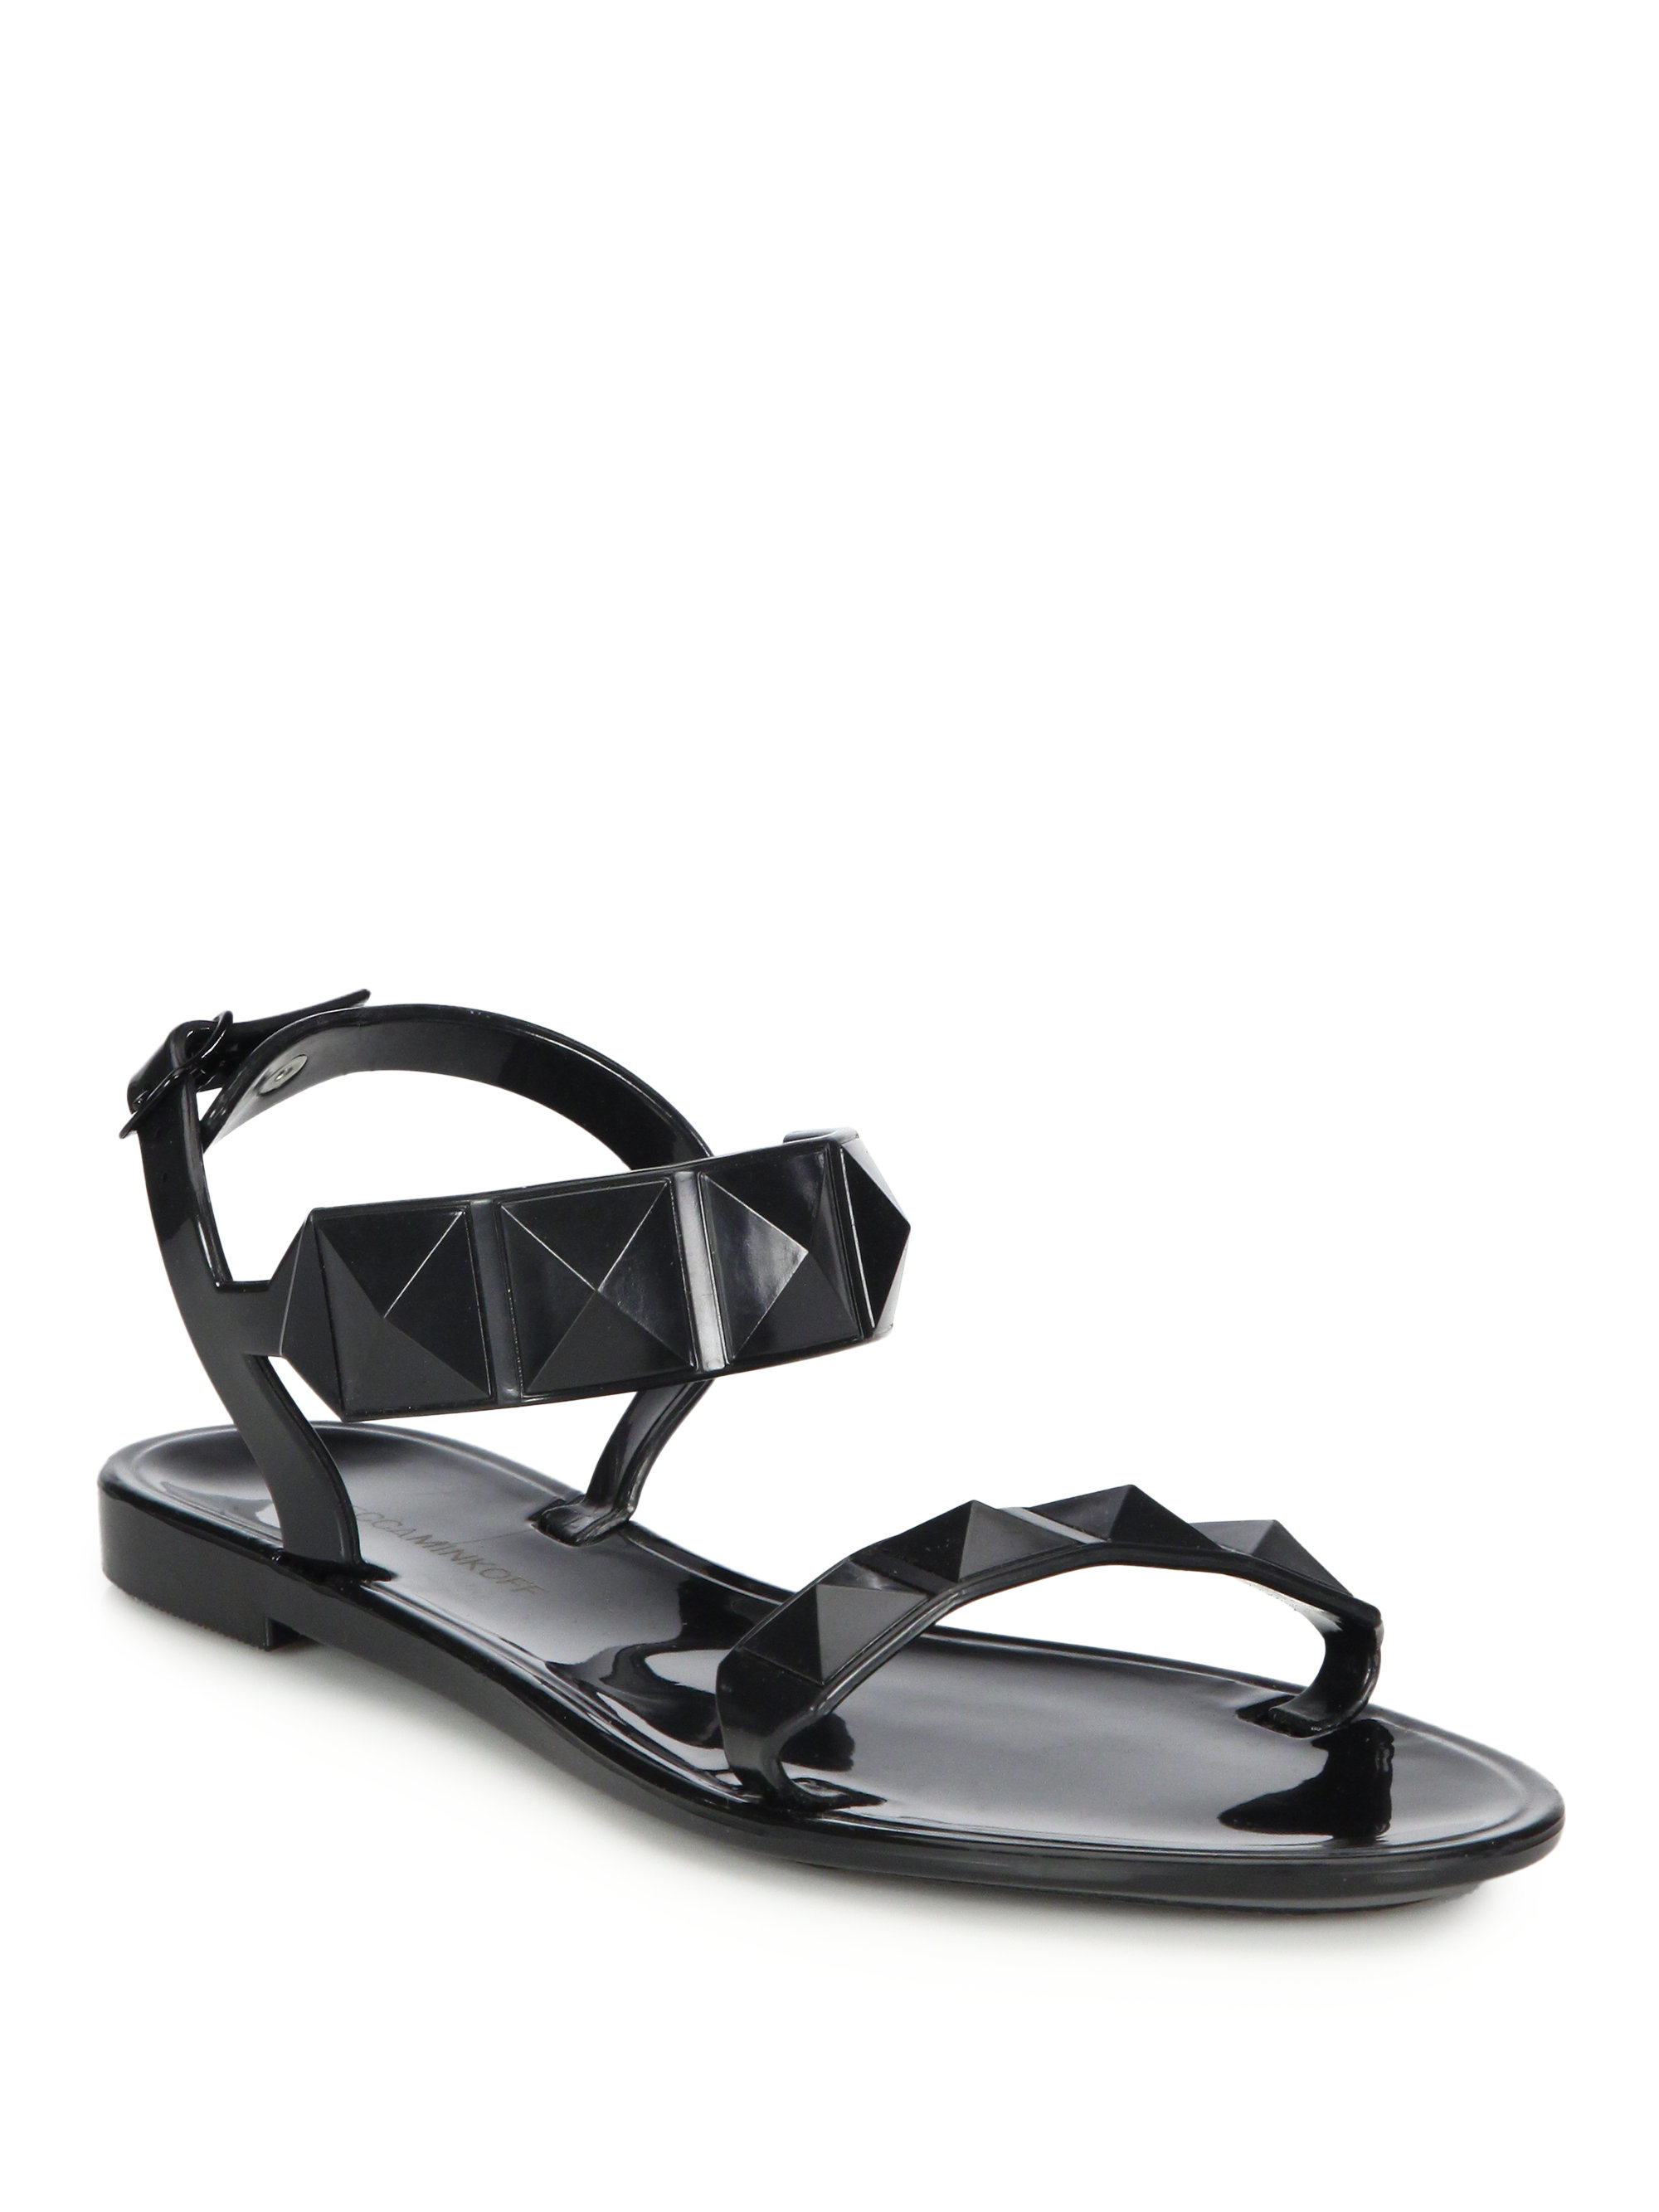 explore cheap online Rebecca Minkoff Embellished Jelly Sandals good selling sale online huge surprise cheap price cheap price from china t38ERr